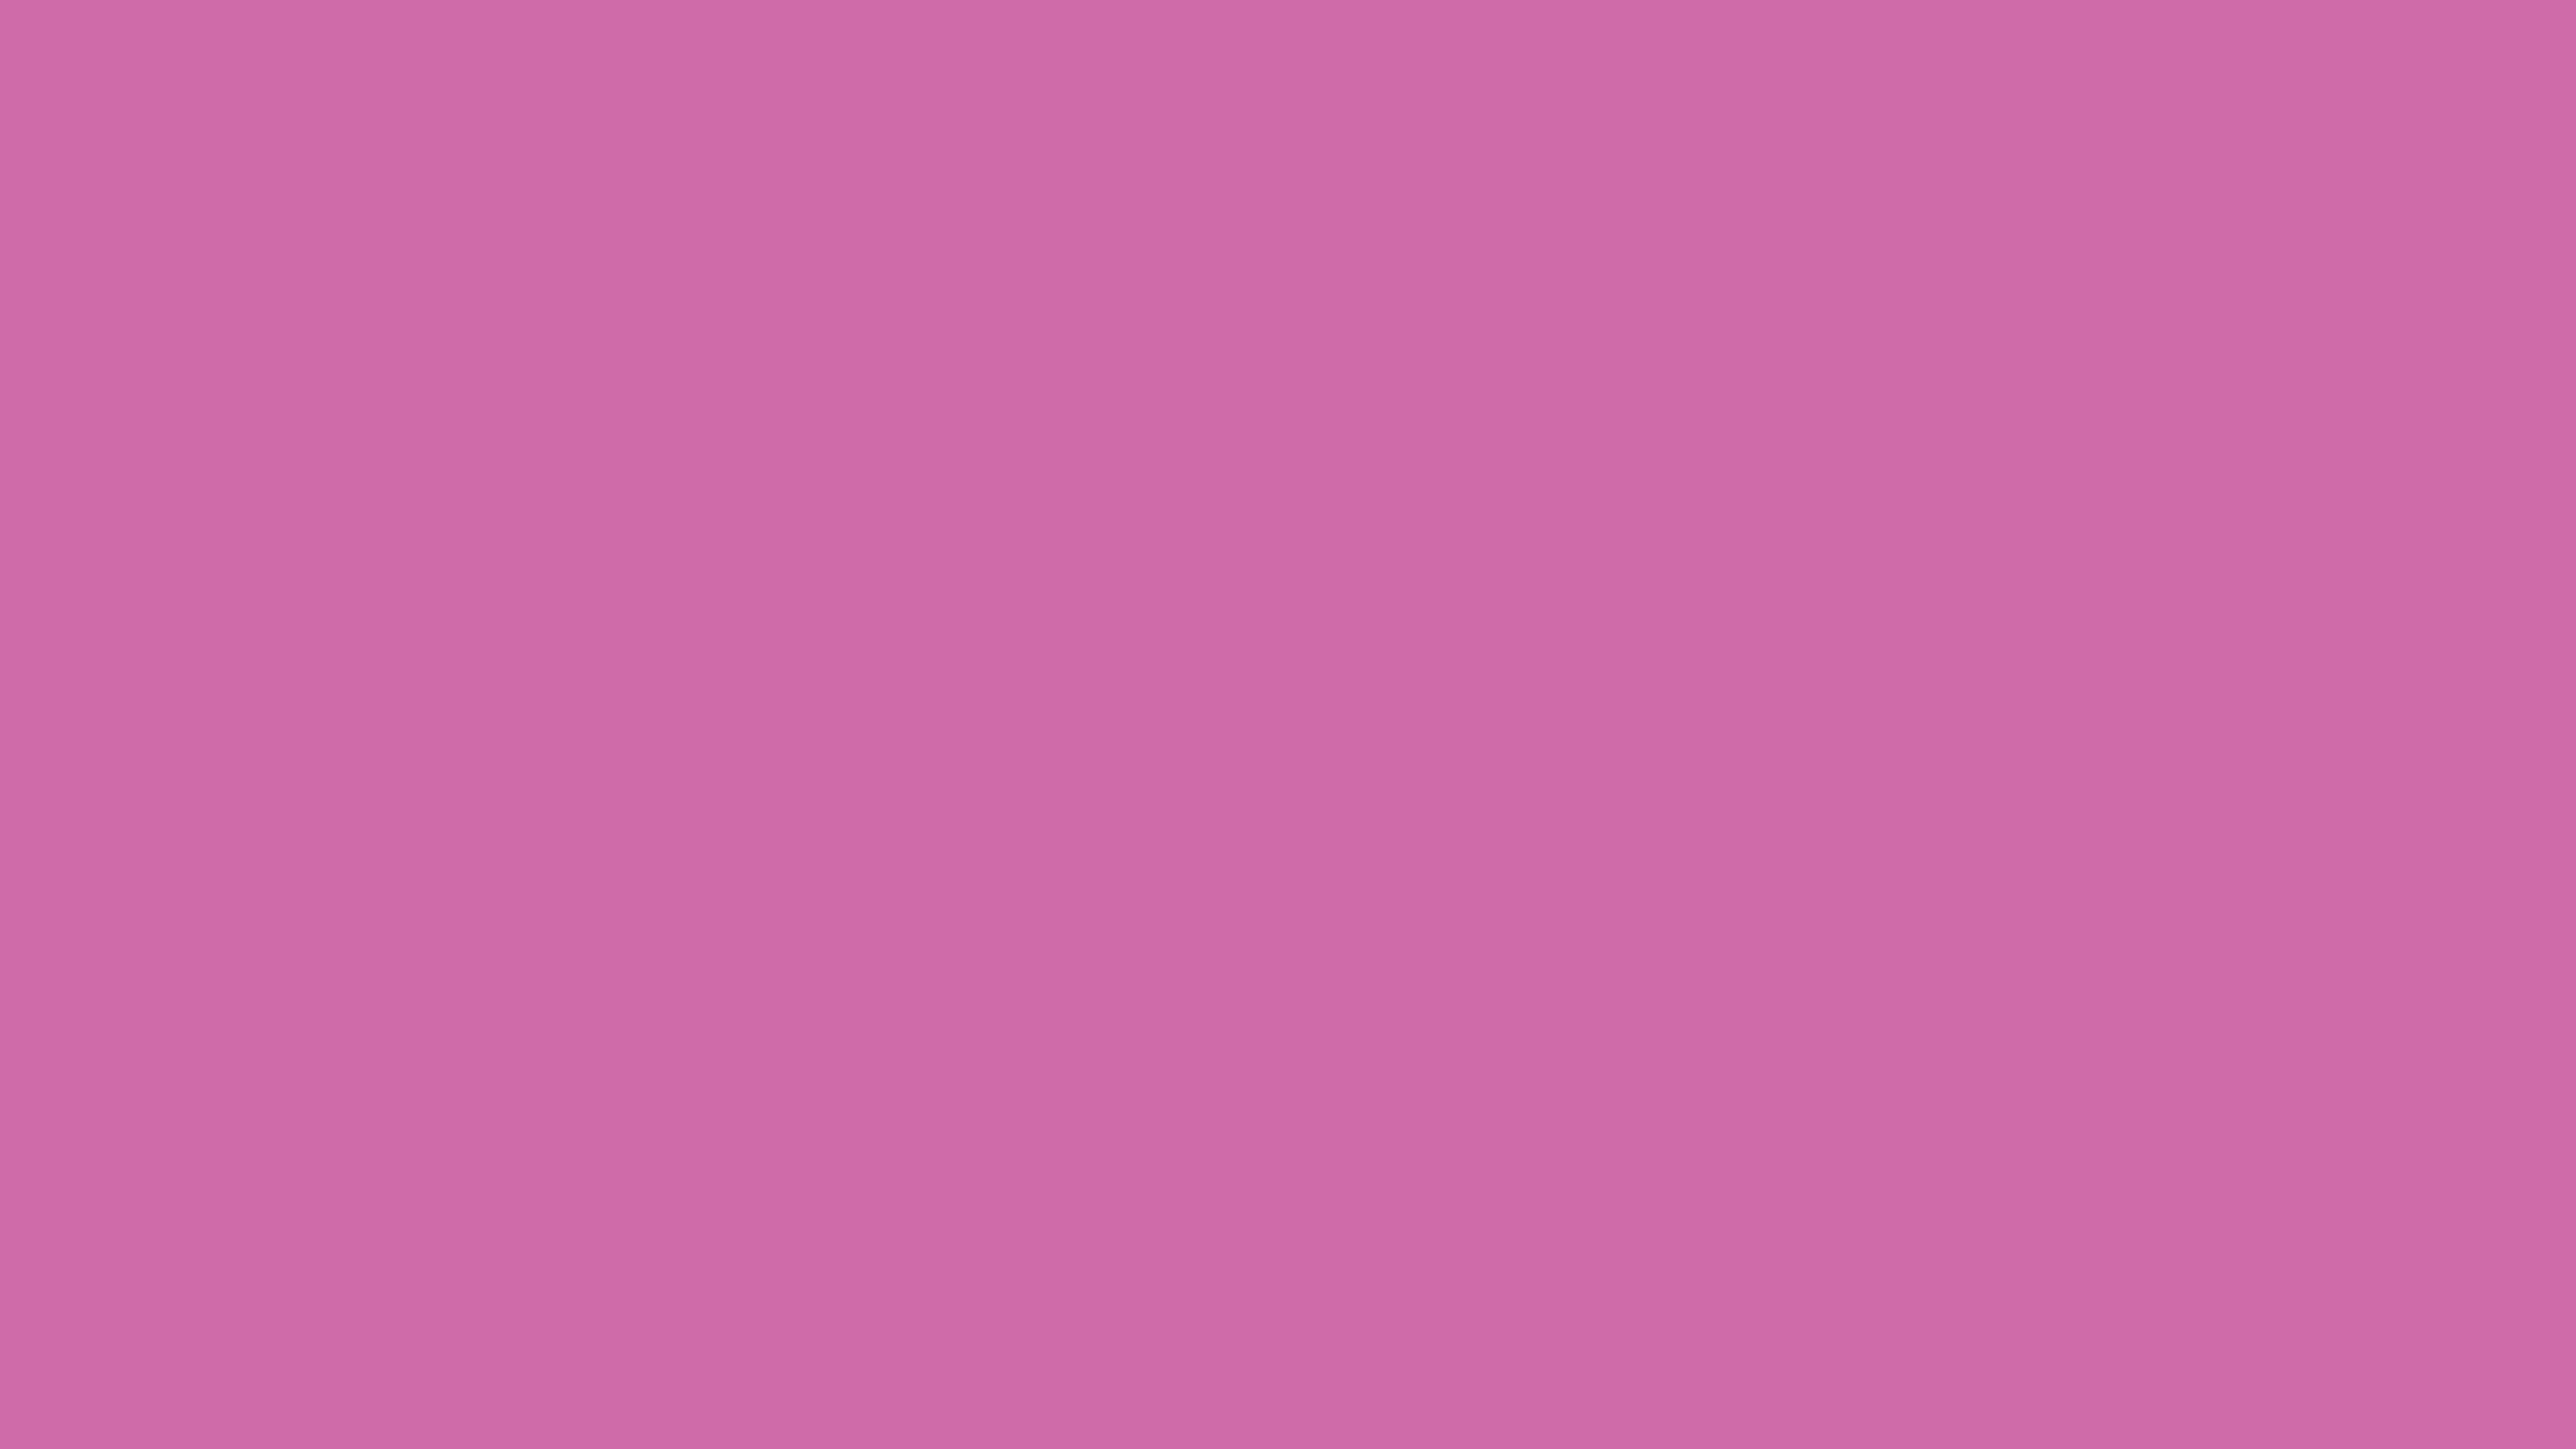 3840x2160 Super Pink Solid Color Background